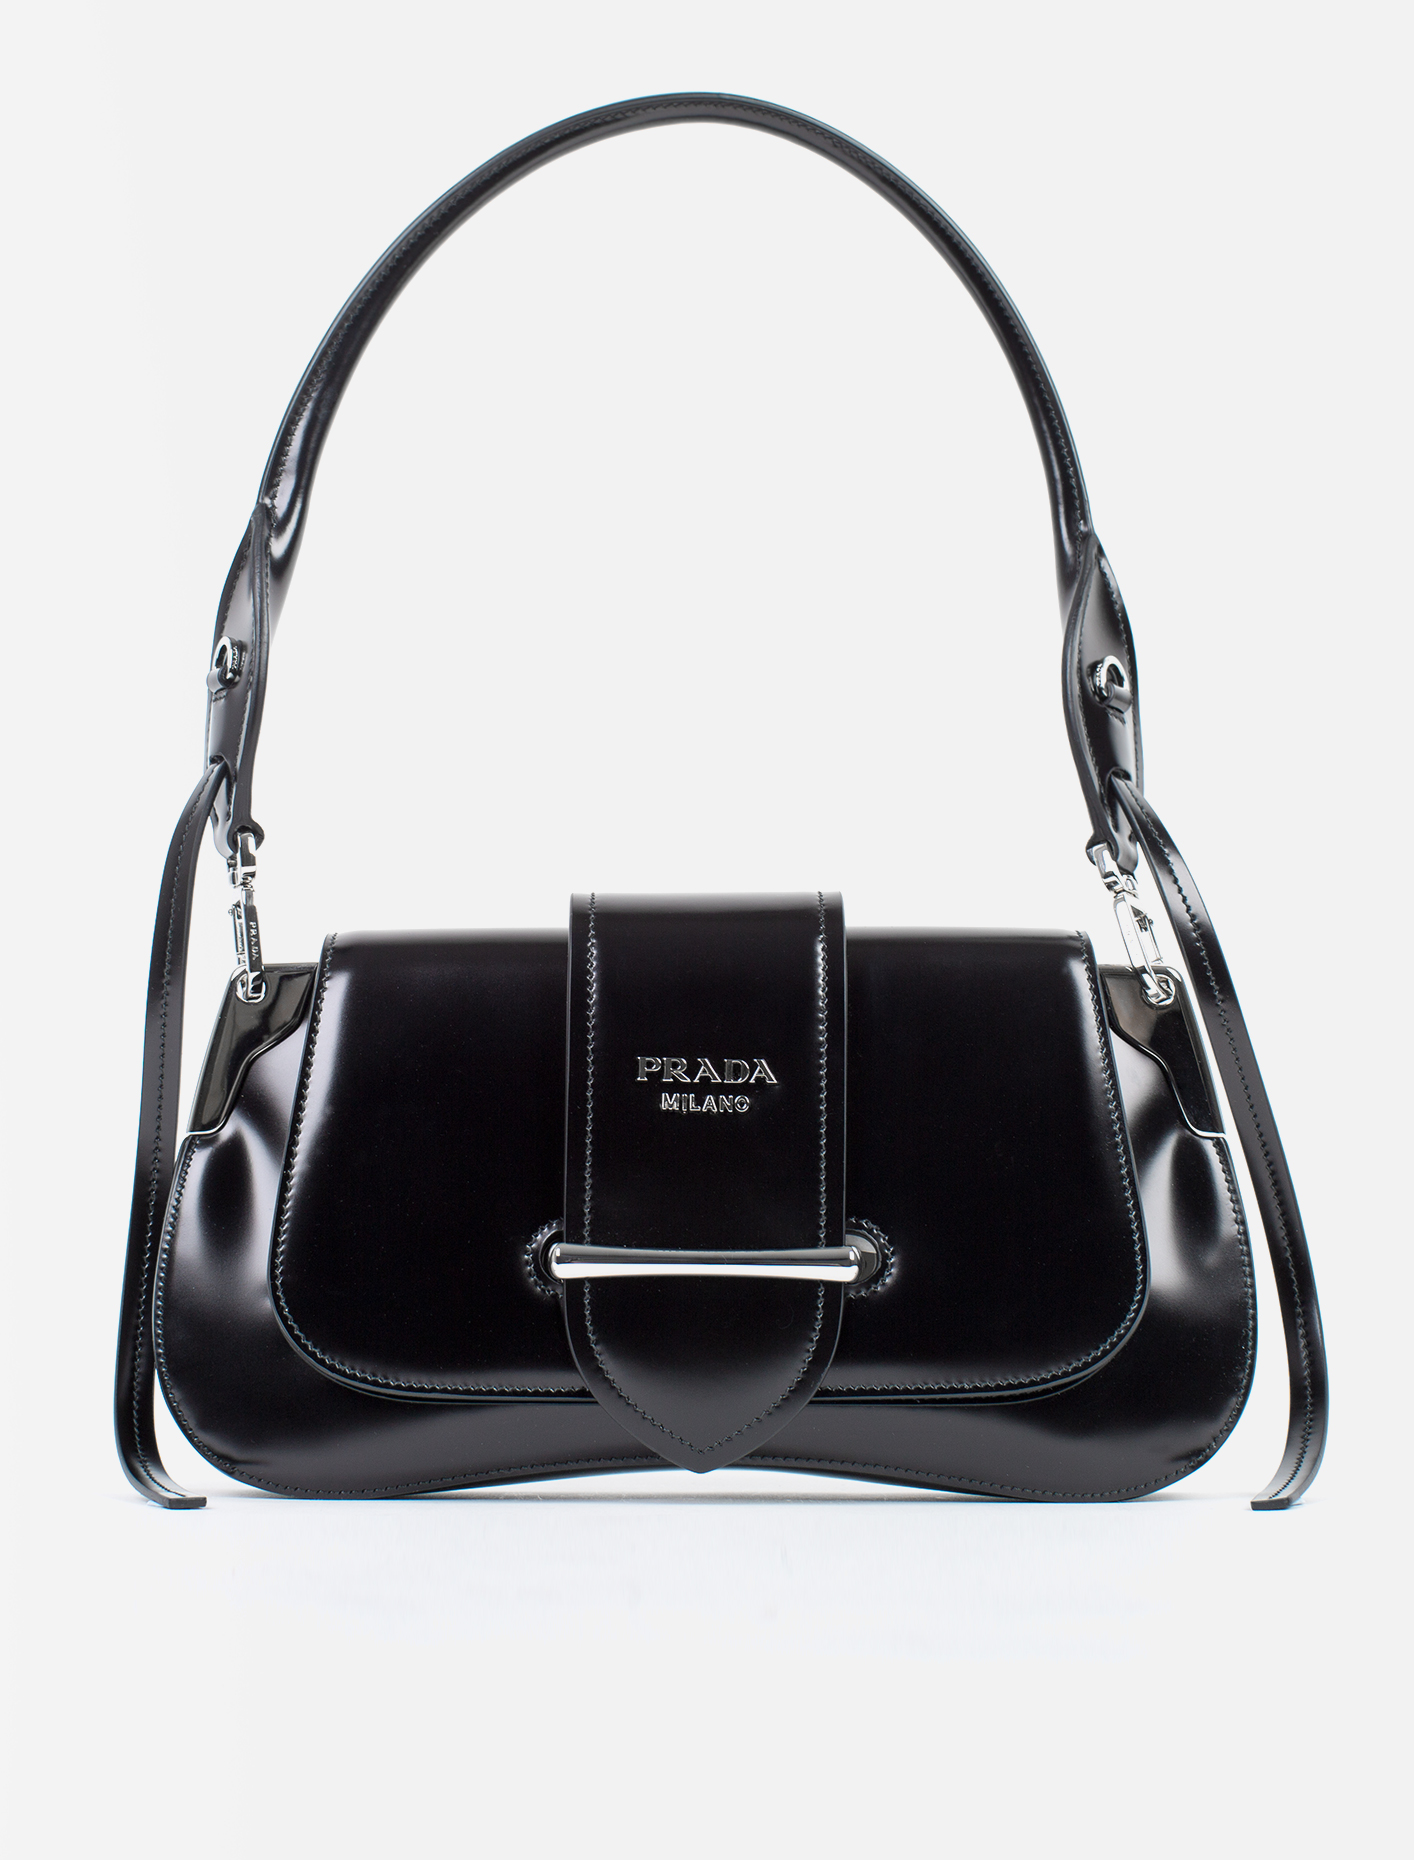 Preview  Prada Logo Handbag ... d0786a1974aee